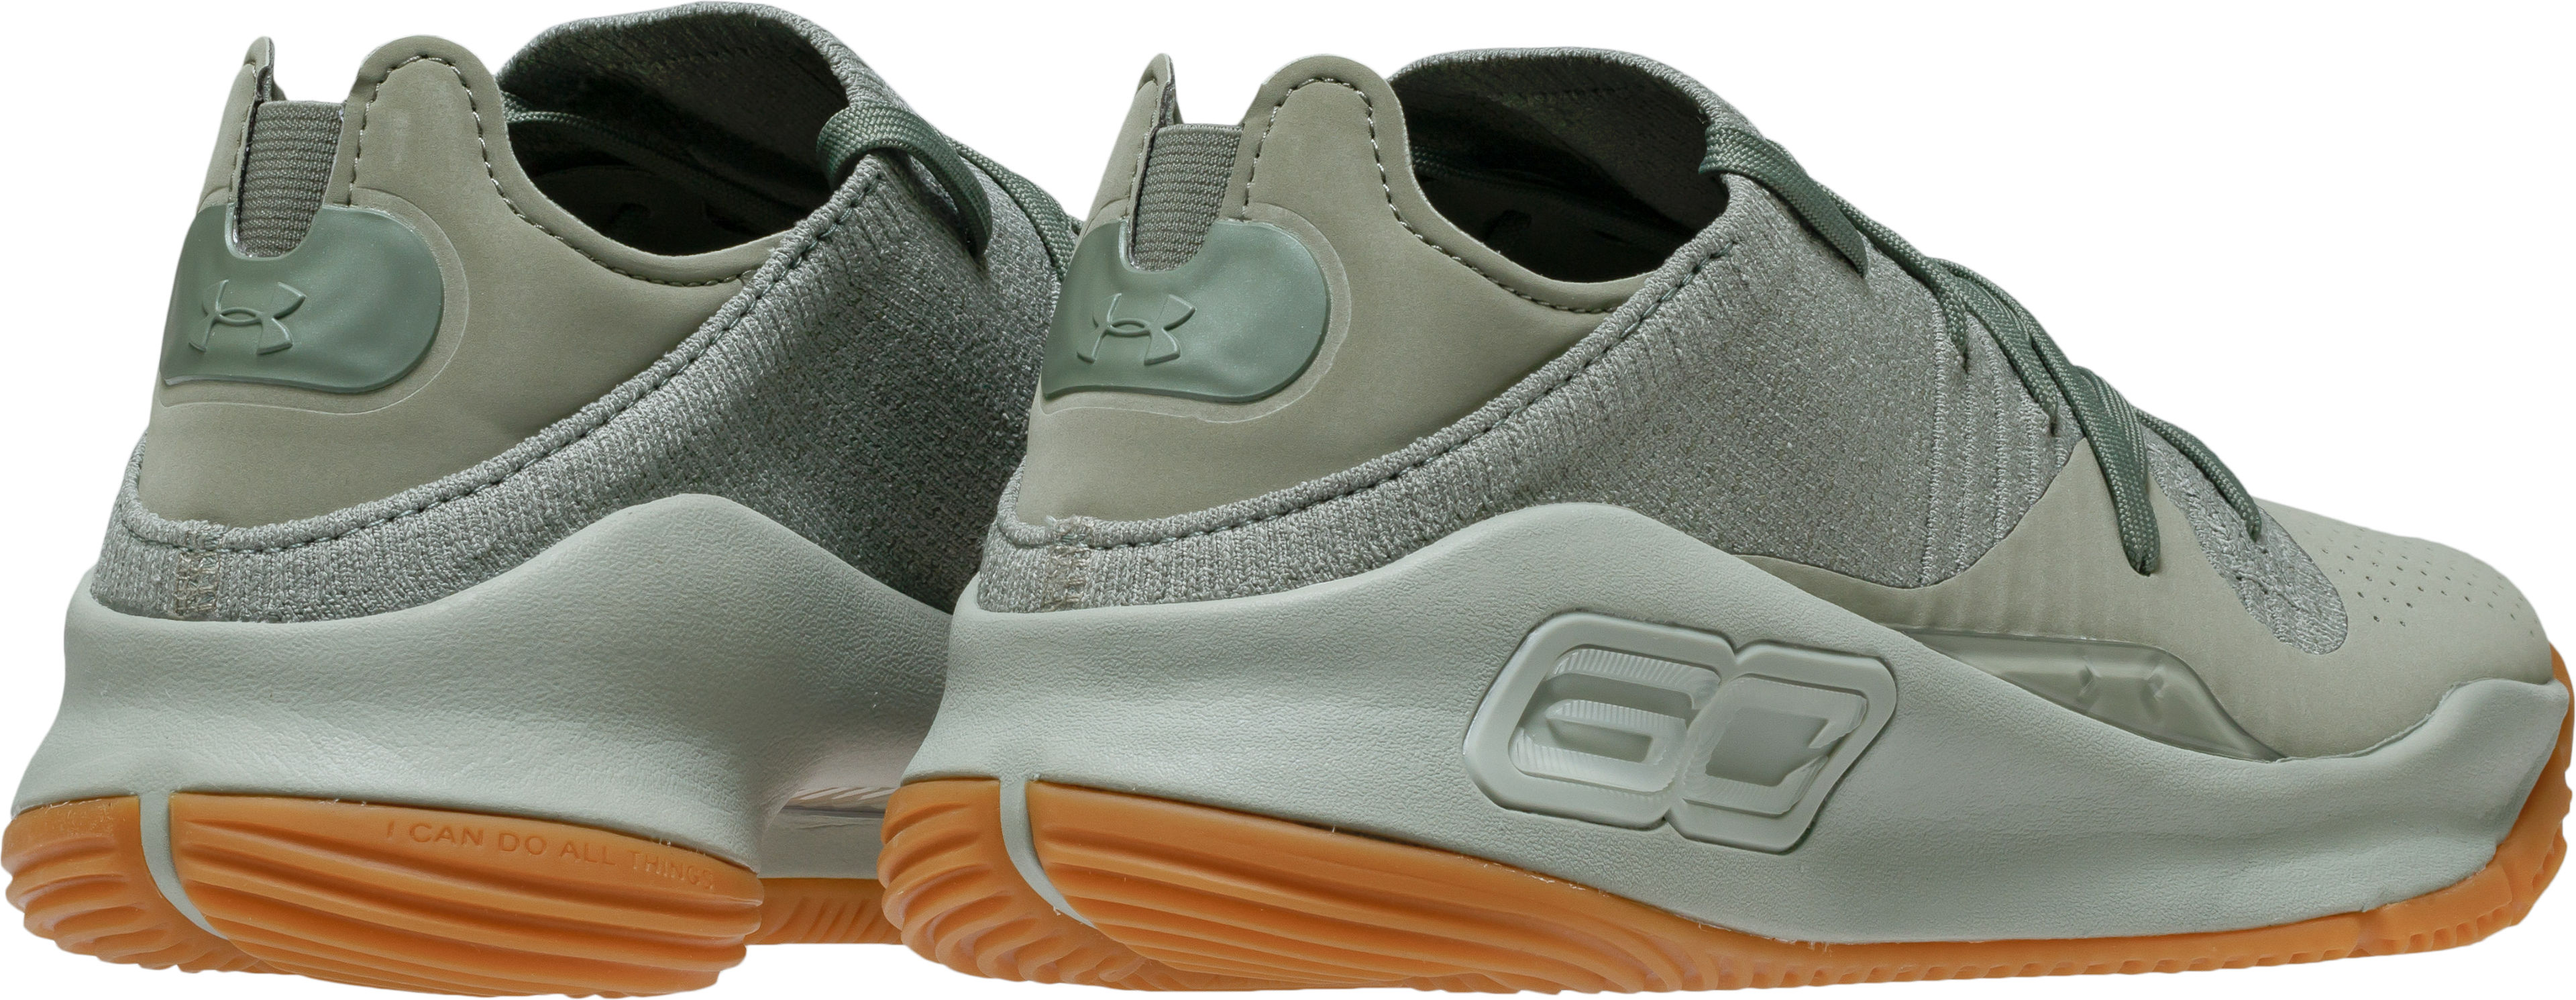 factory price ad7b4 3b32c under armour curry 4 low green gum 6 - WearTesters